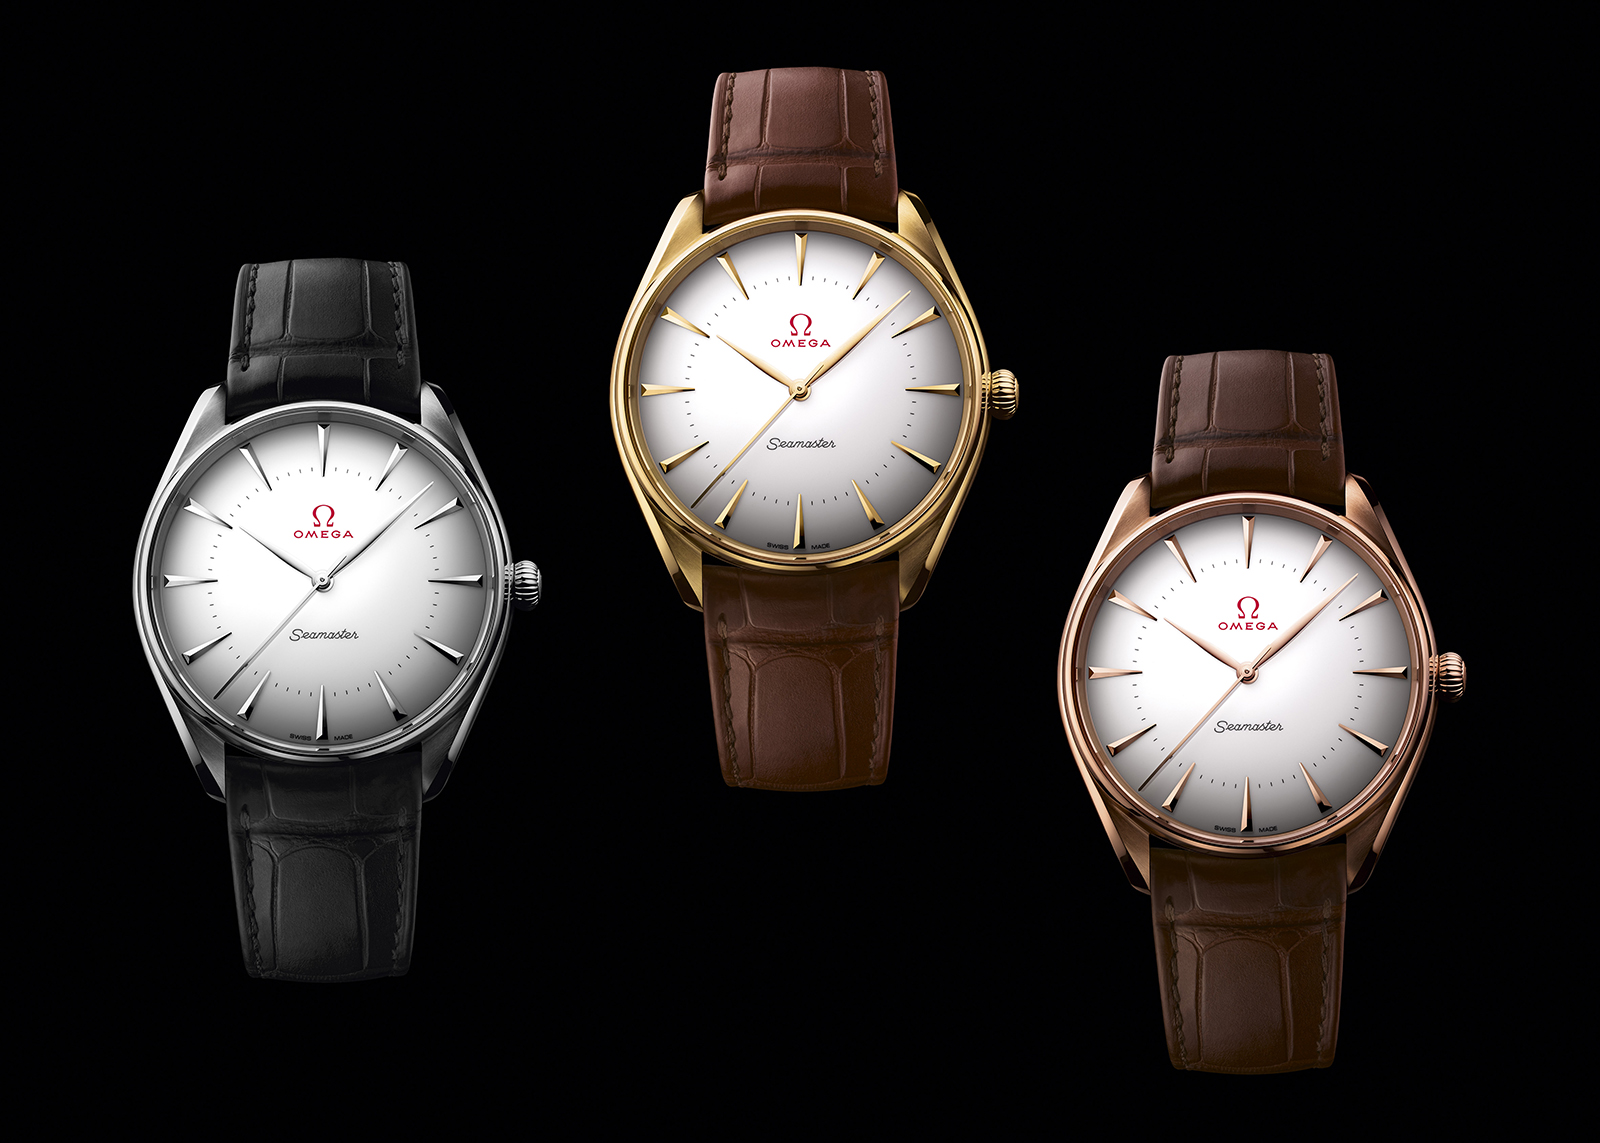 Omega Seamaster Olympic Games Collection in gold